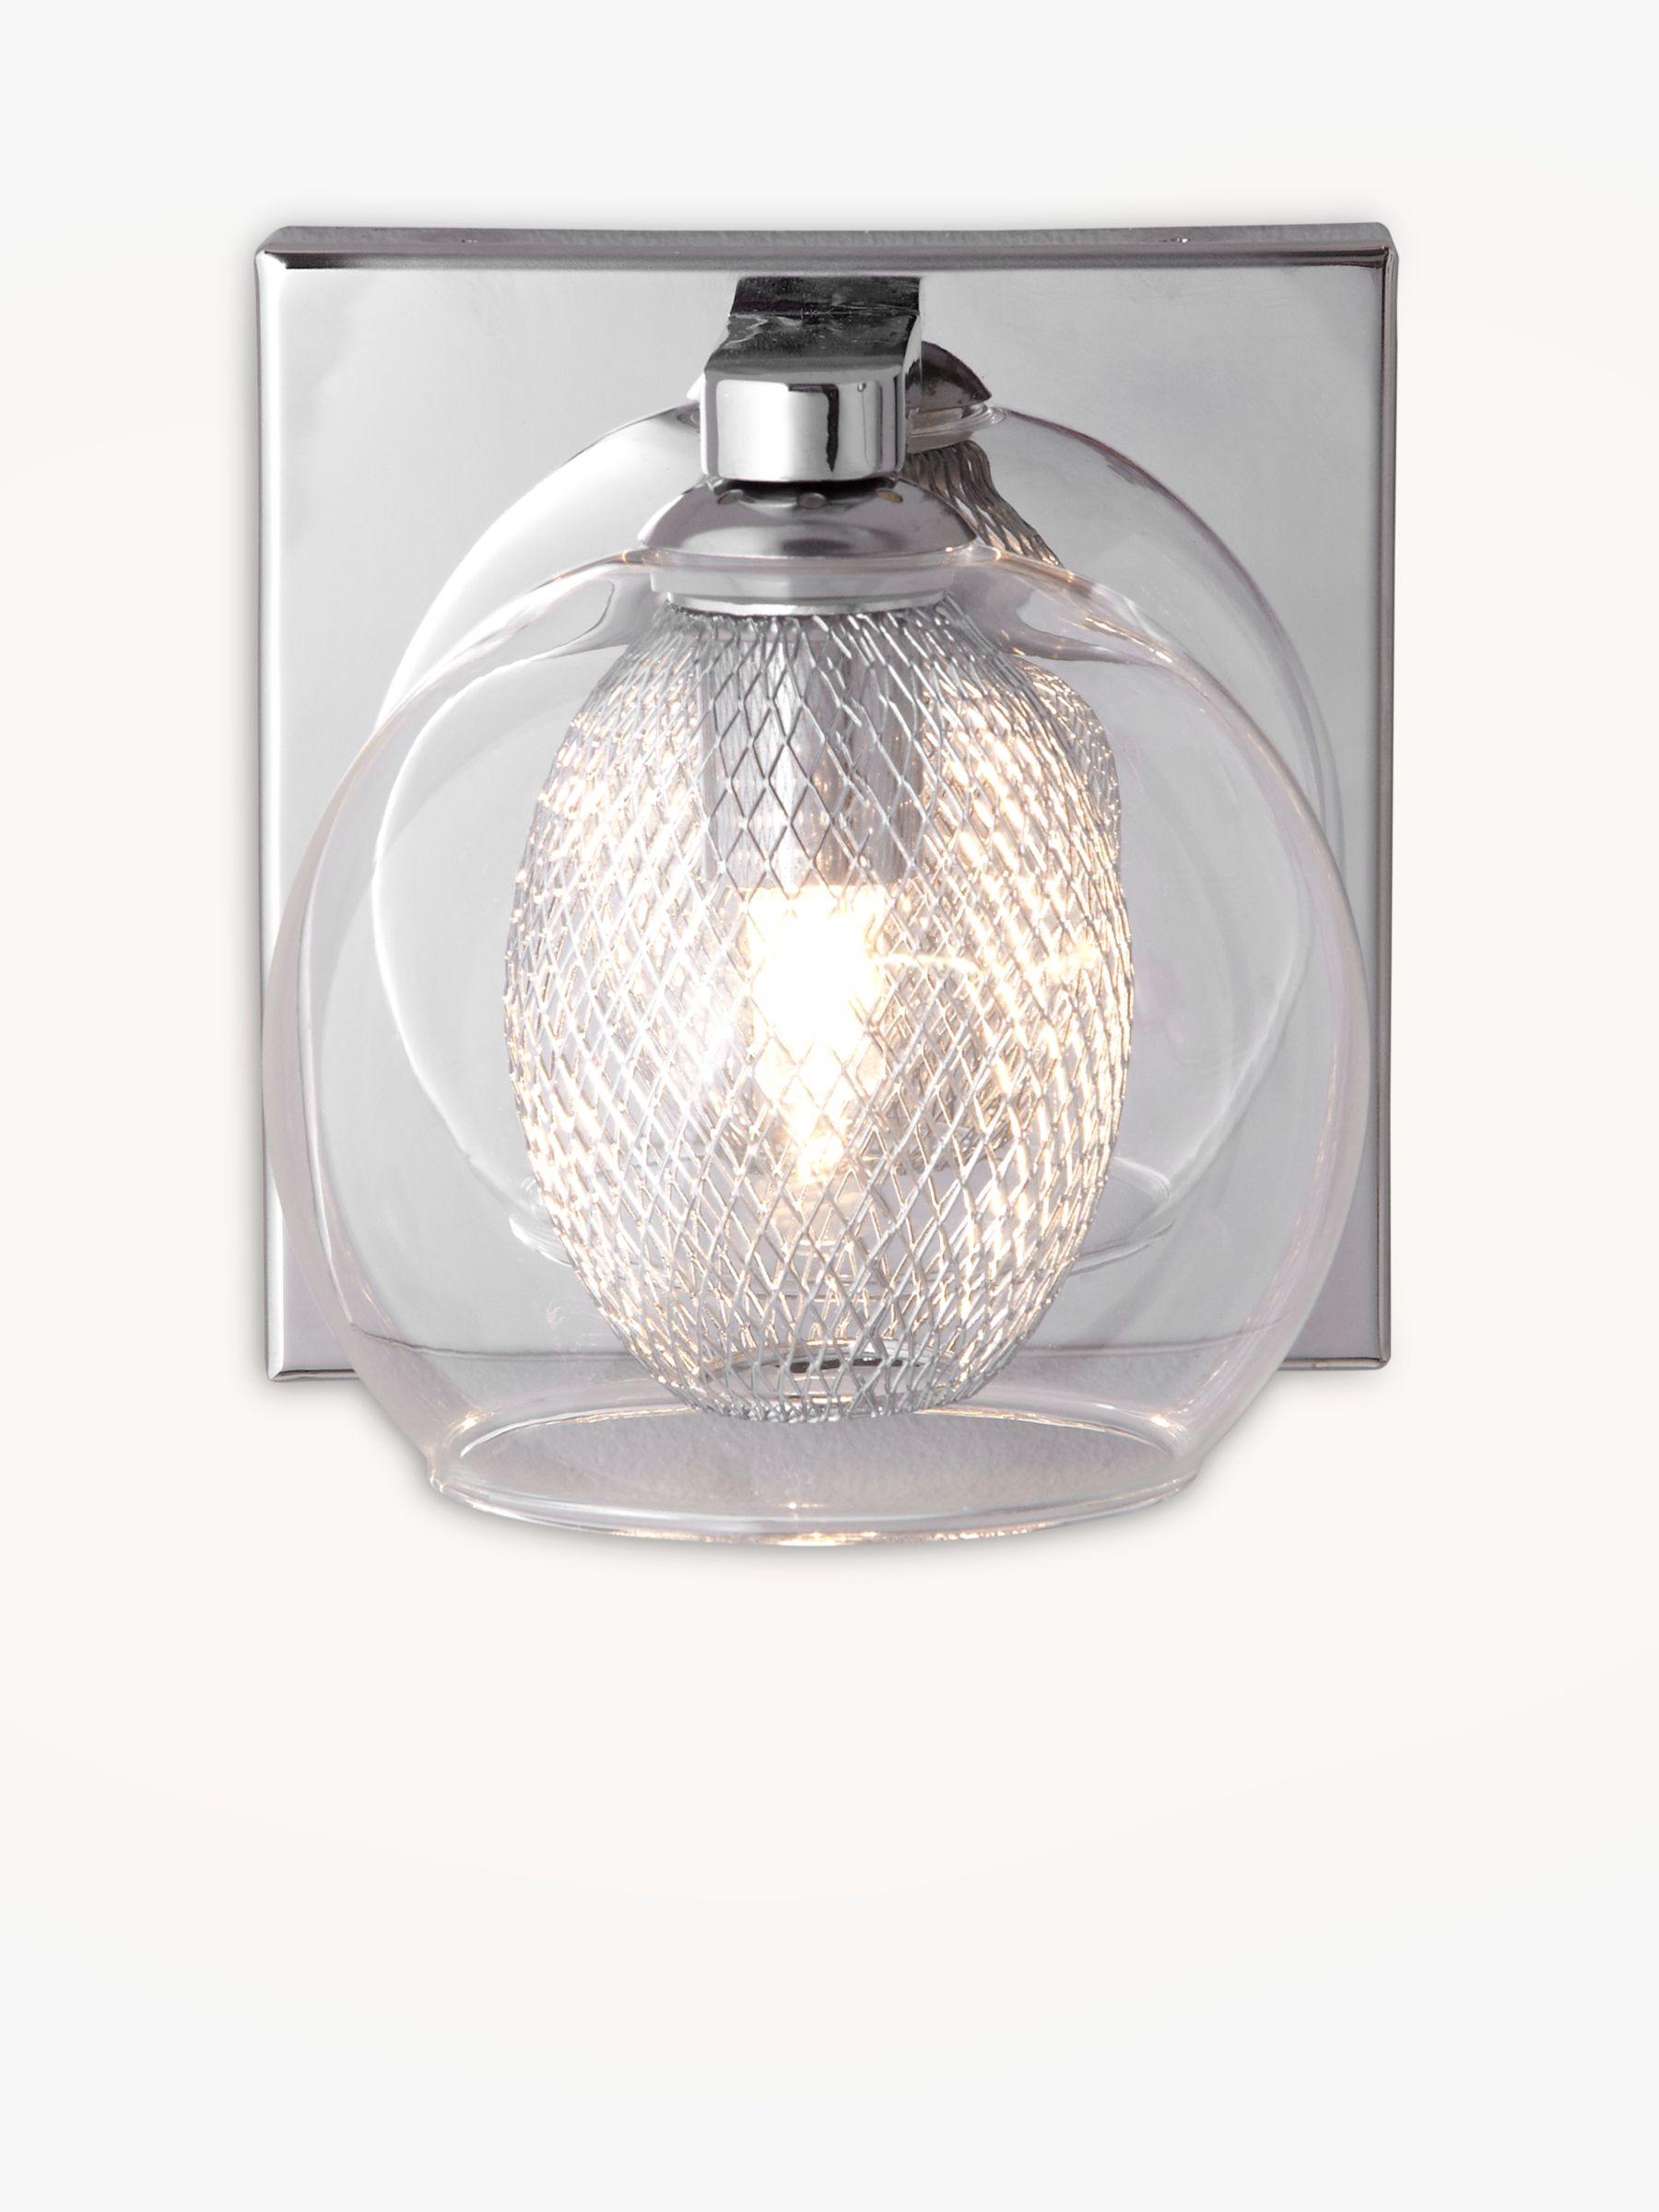 John Lewis Wall Lights Glass : Buy John Lewis Knightley Mesh Net Wall Light John Lewis